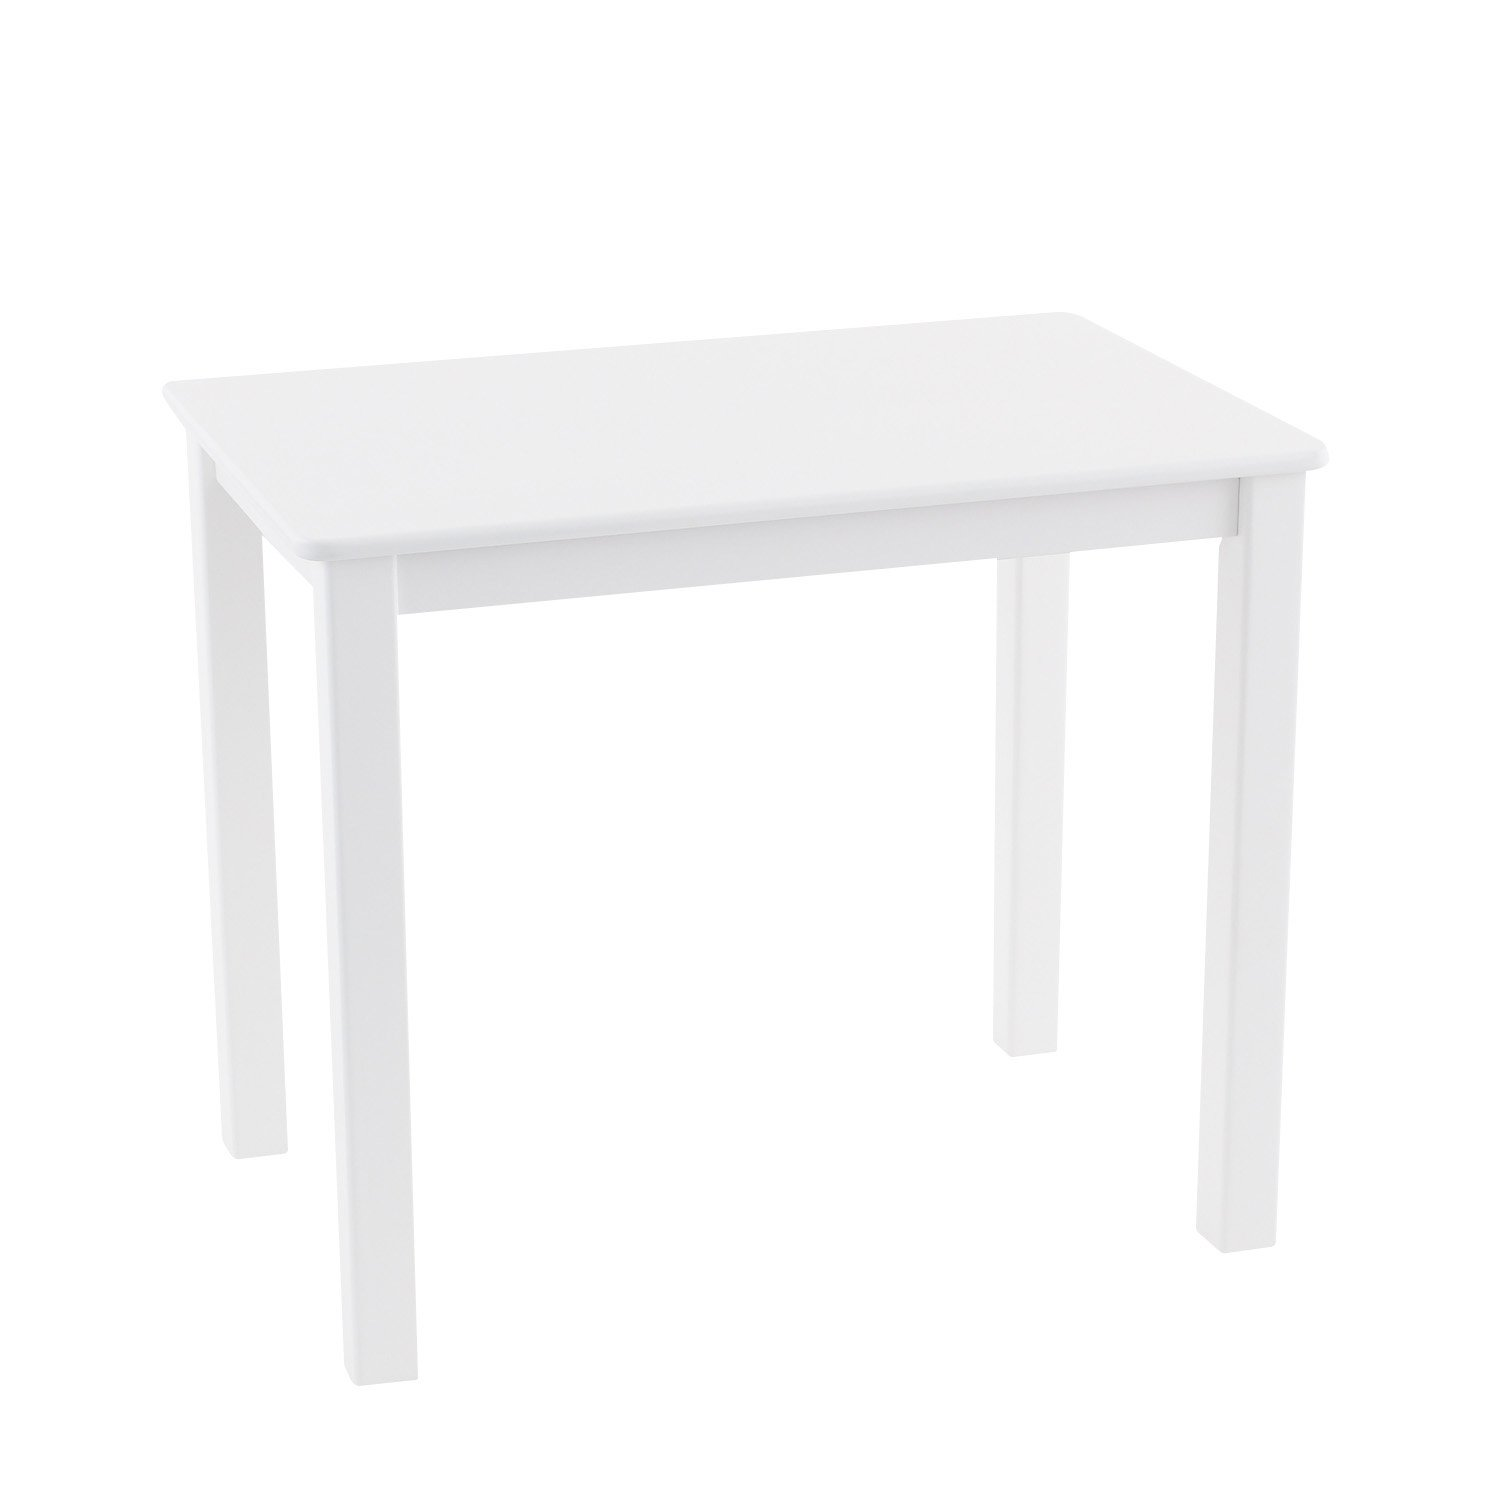 Max & Lily Natural Wood Kid and Toddler Rectangular Table, White